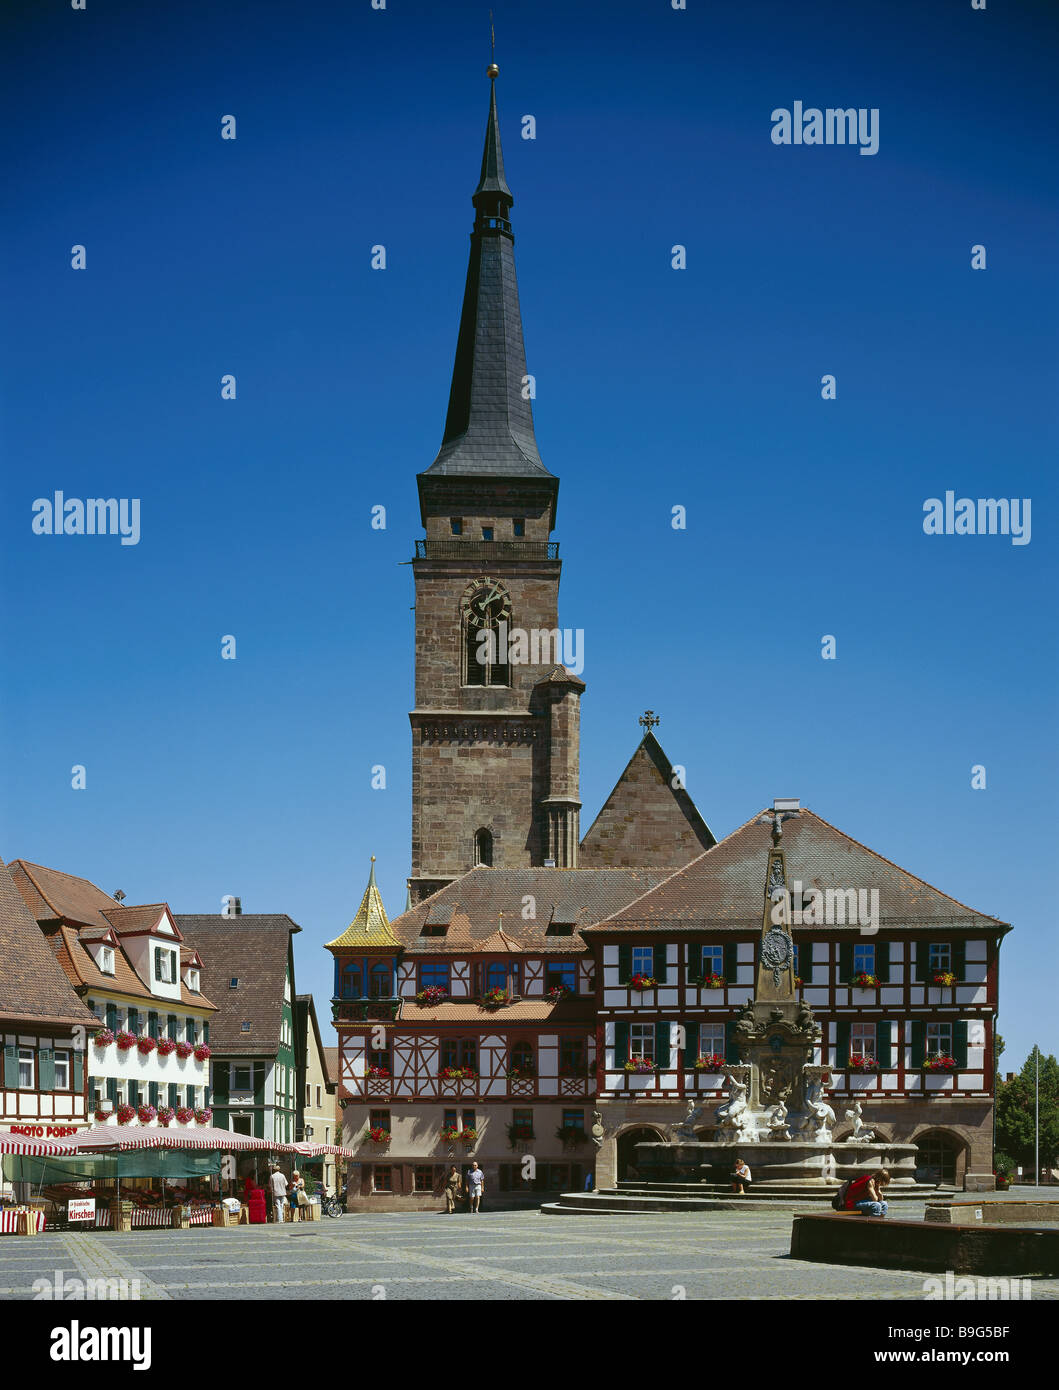 deutschland bayern schwabach stadtkirche sch ner brunnen rathausbrunnen franken k nigsplatz. Black Bedroom Furniture Sets. Home Design Ideas